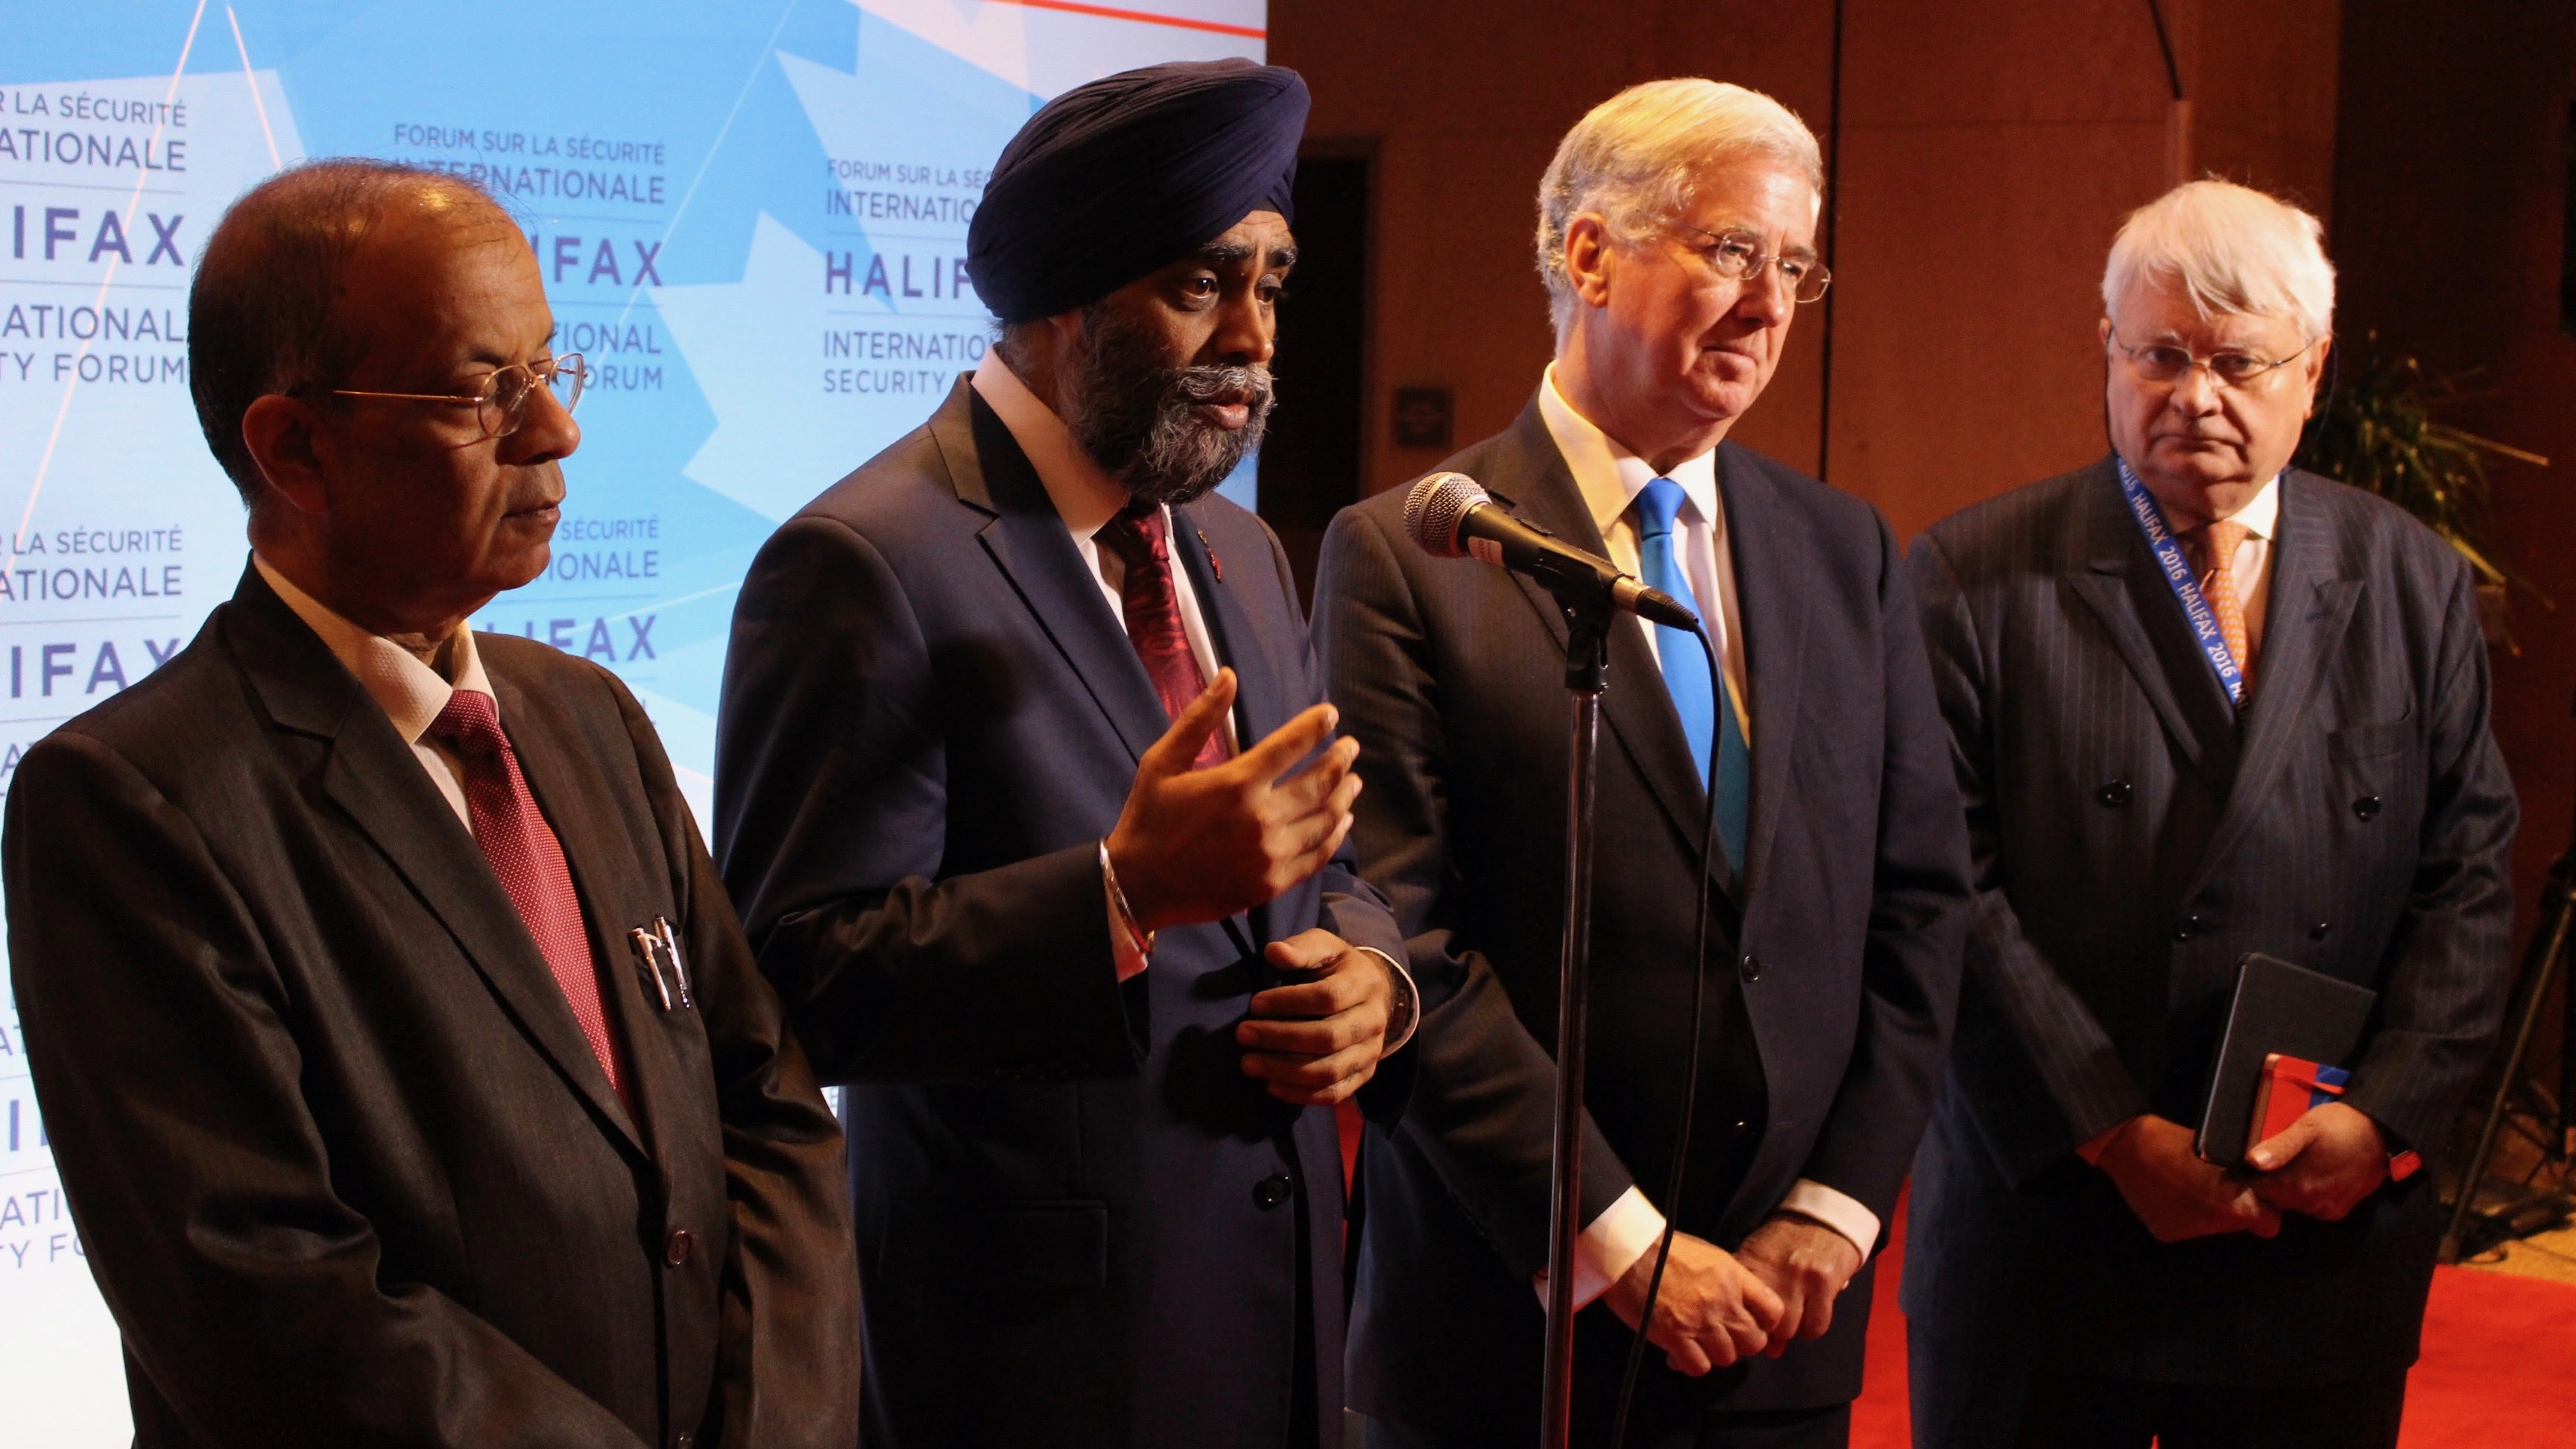 UN Under-Secretary-General for Field Support Atul Khare, Canadian Defence Minister Harjit Sajjan, U.K. Secretary of State Sir Michael Fallon and UN Under-Secretary-General for Peacekeeping Hervé Ladsous address the media after a meeting on UN peace operations Friday morning.